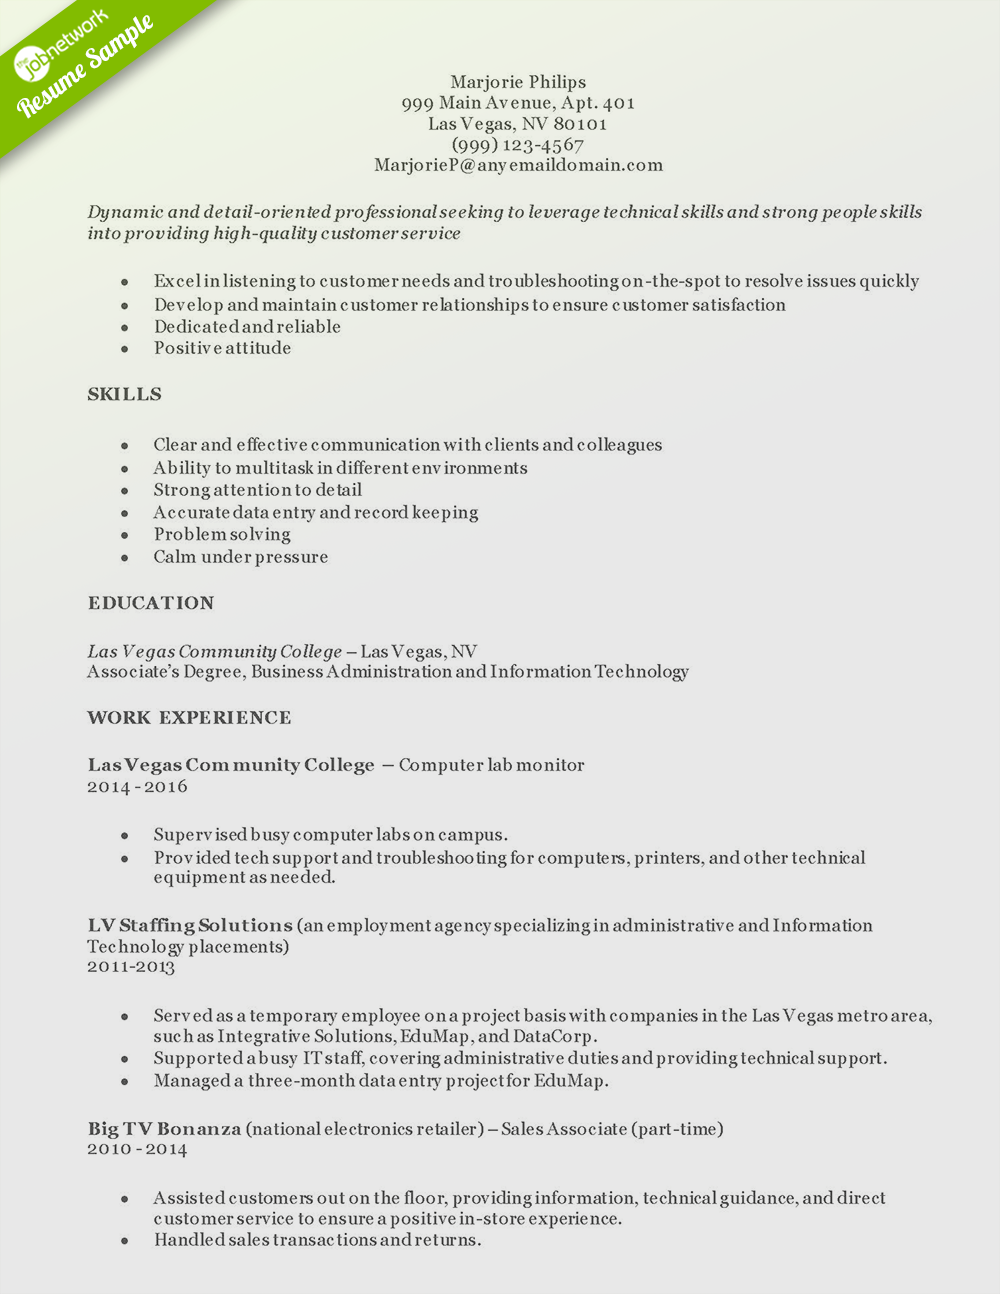 samples of excellent resumes